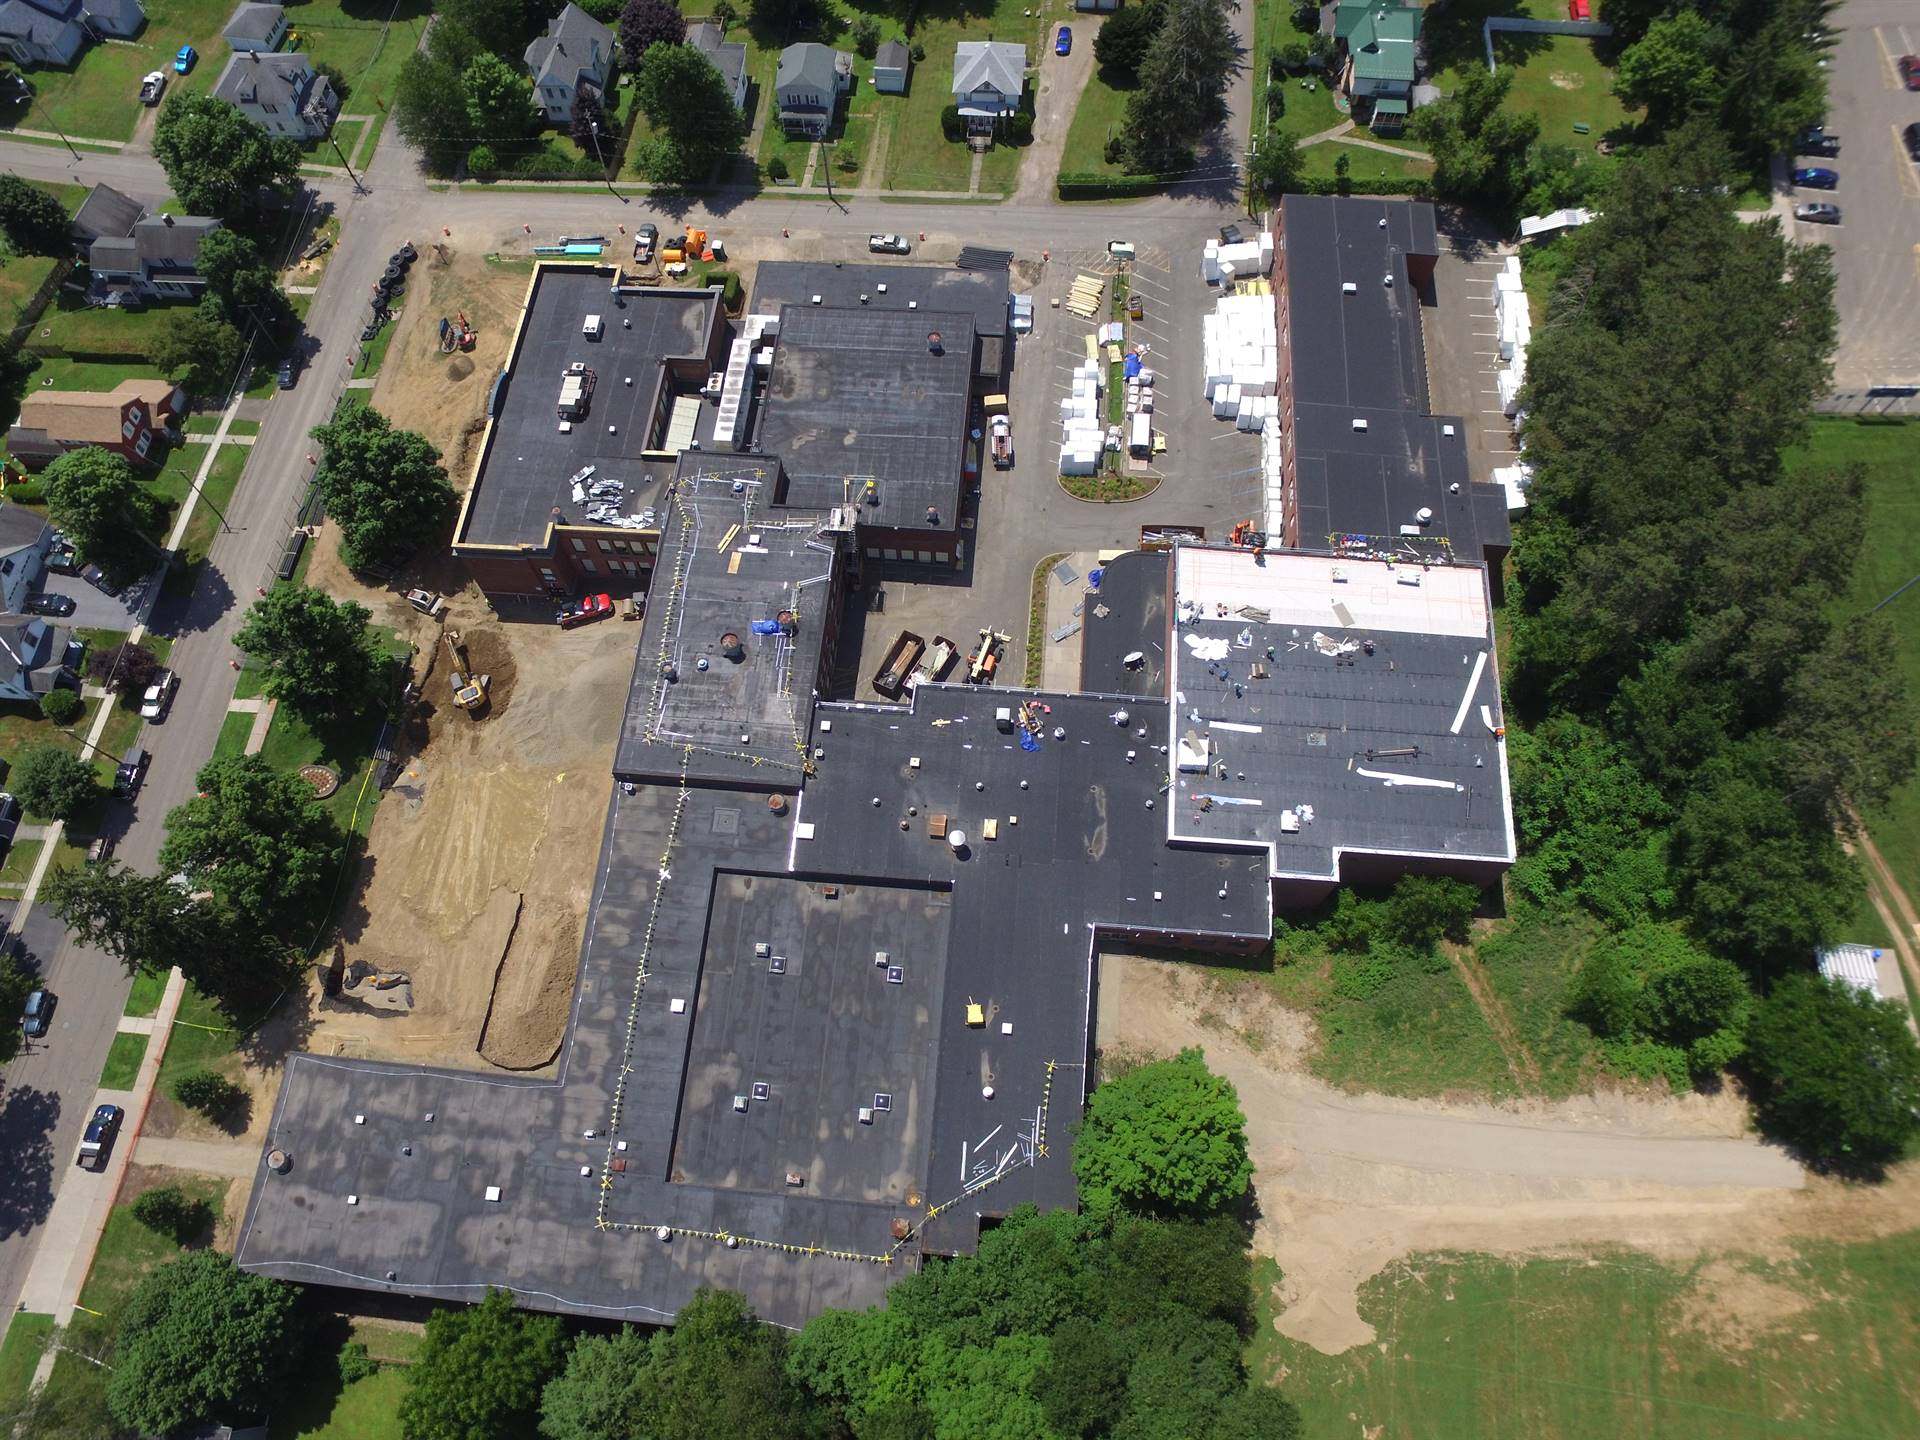 Aerial view High School - from the Soccer field